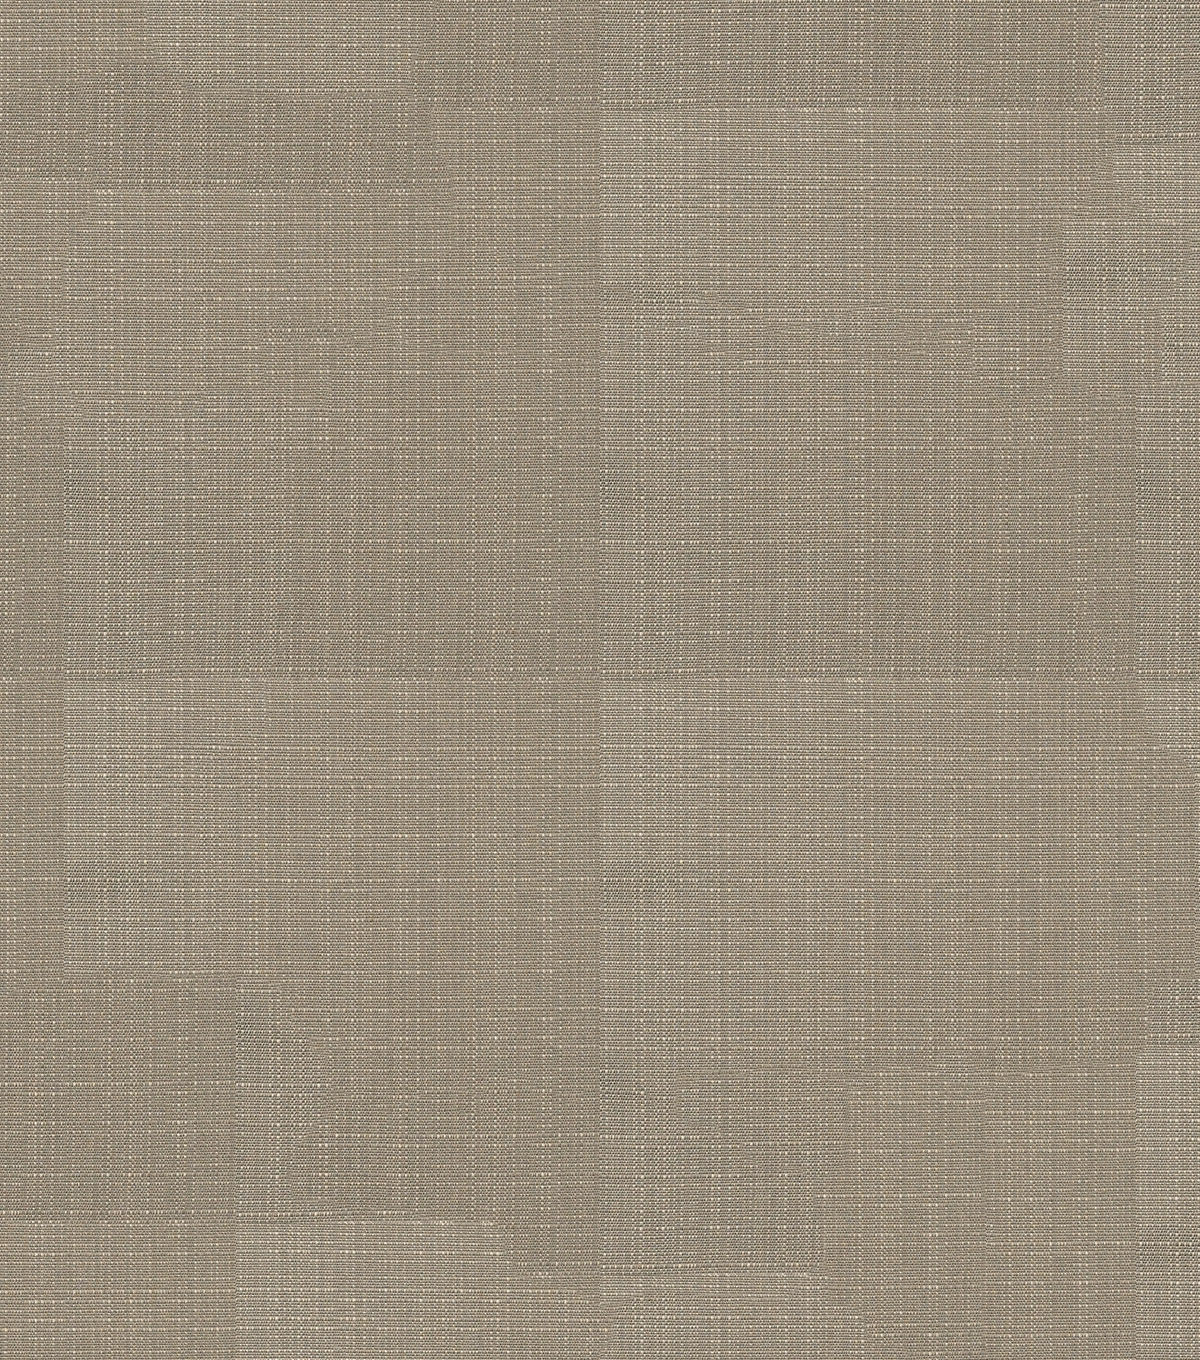 Sunbrella Outdoor Fabric 54\u0022-Linen Taupe